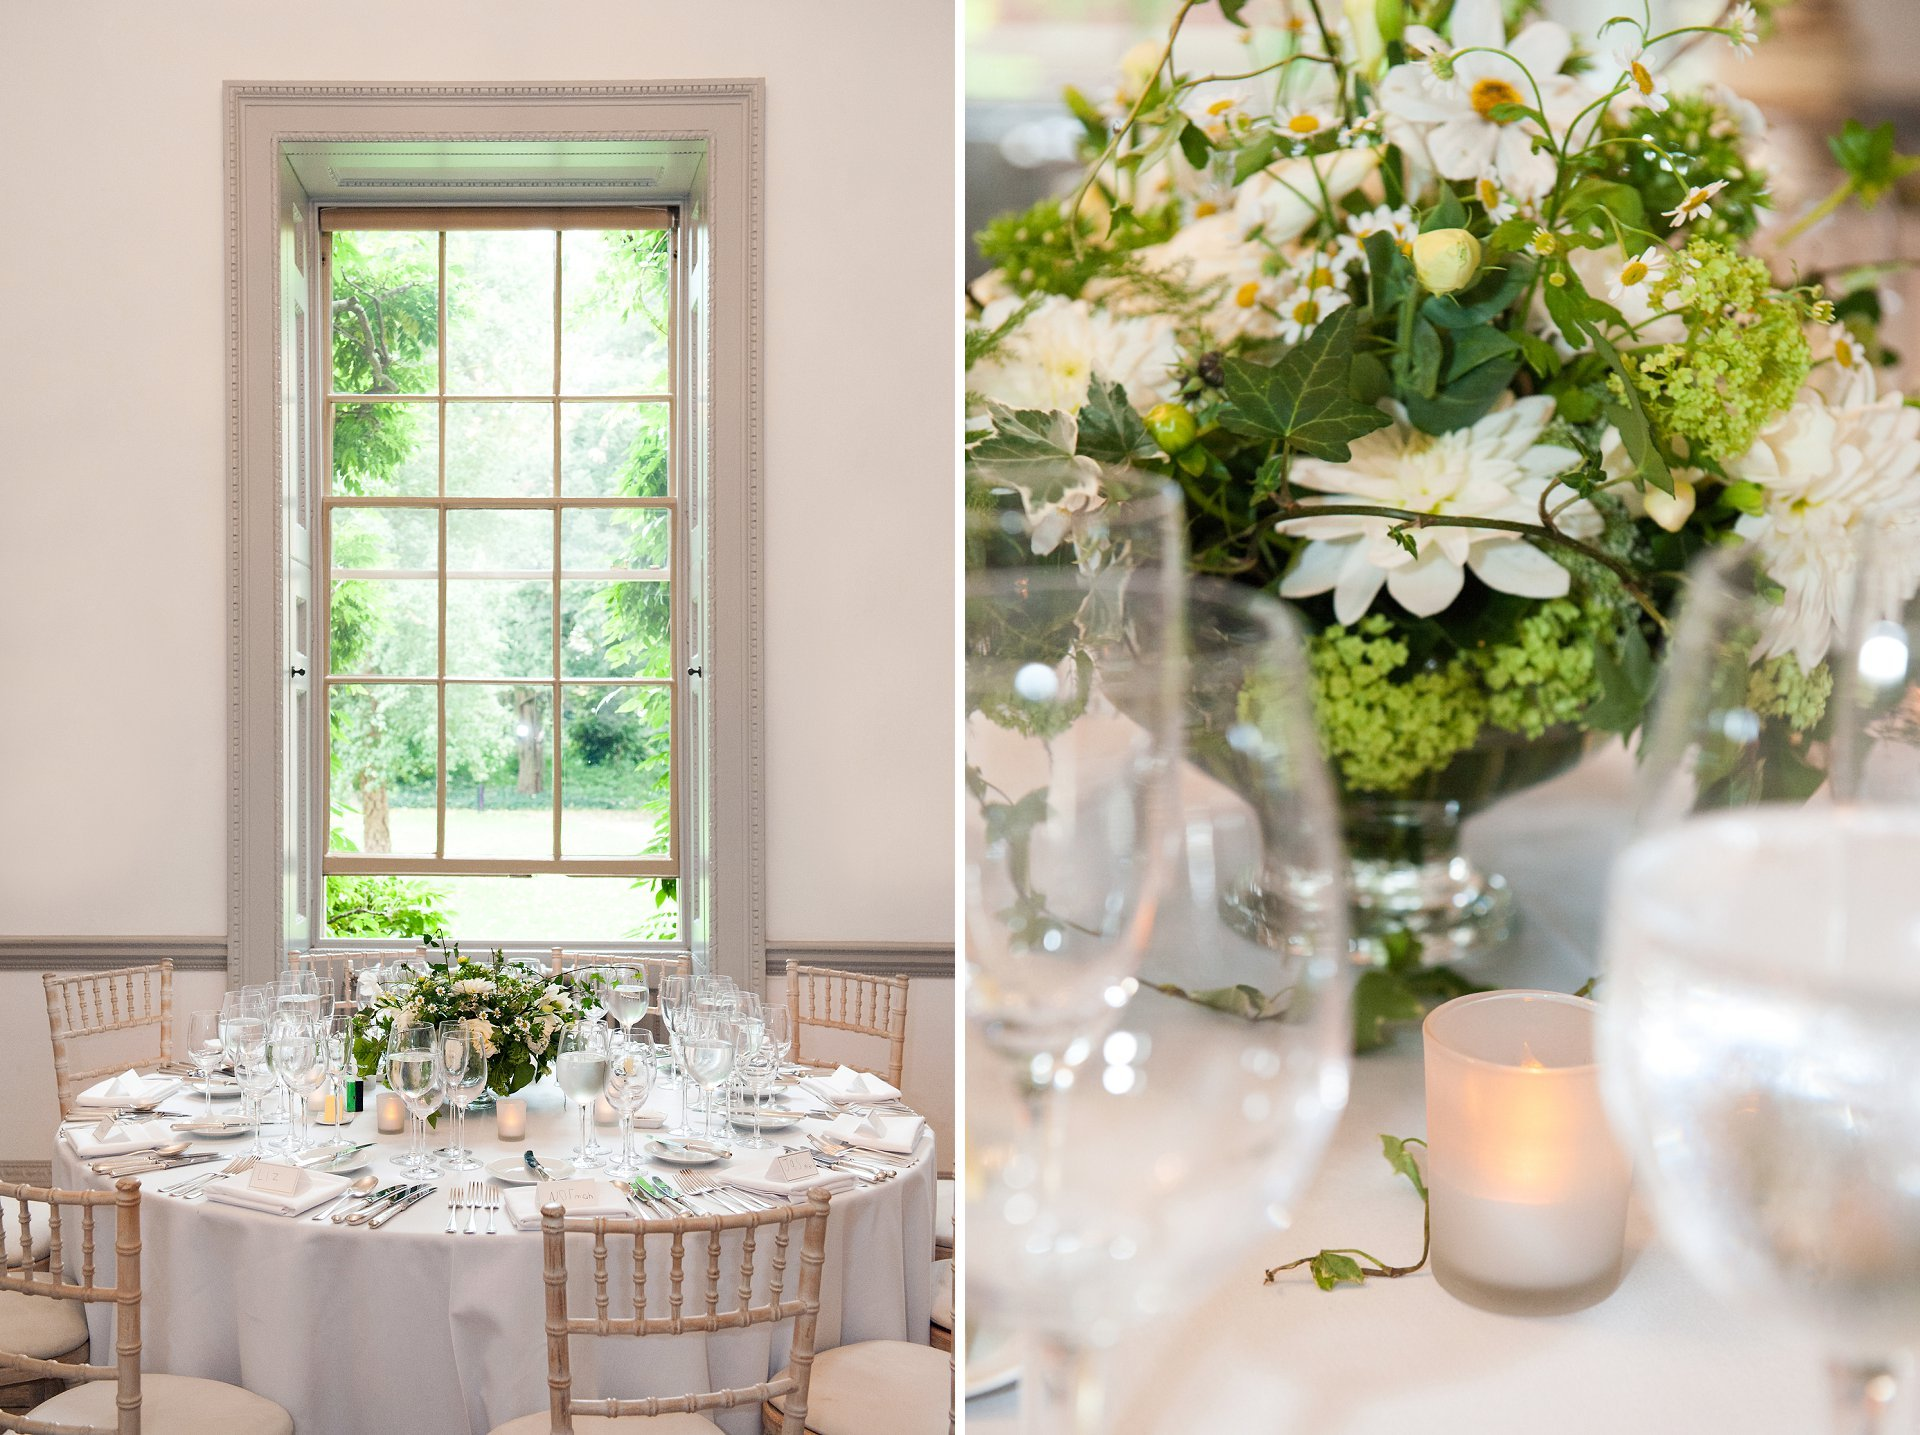 The tall shuttered windows in the Bishop Terrick's Drawing Room at Fulham Palace look so pretty as a backdrop to a wedding breakfast